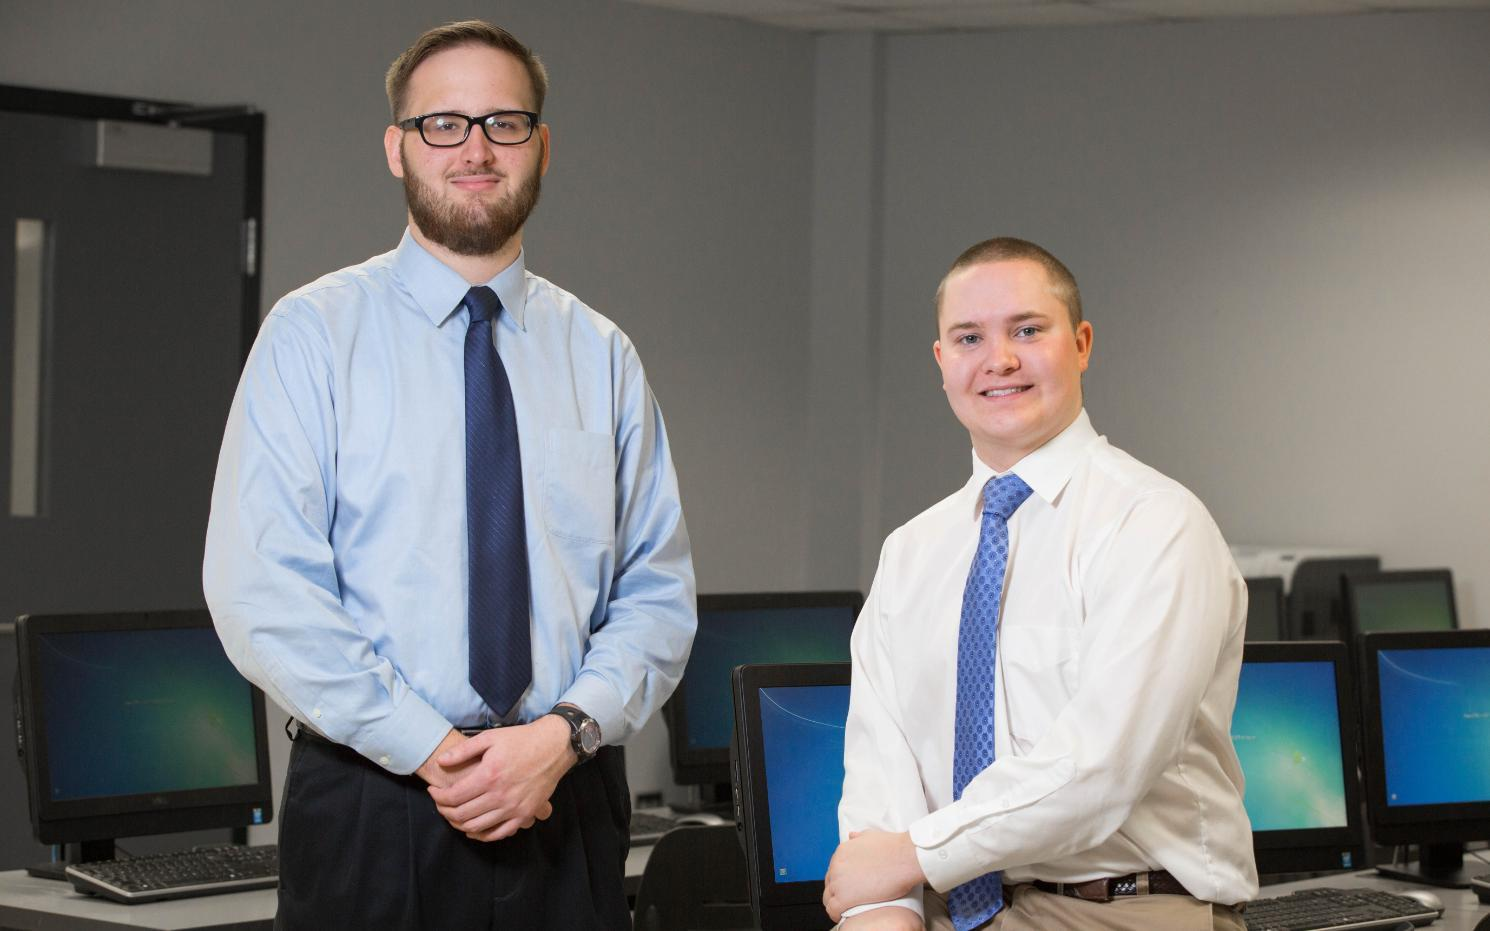 Cyber security scholarships that Tyler Chuba '18 (left) and Michael Moore '18 recently received from the state will aid their career plans.